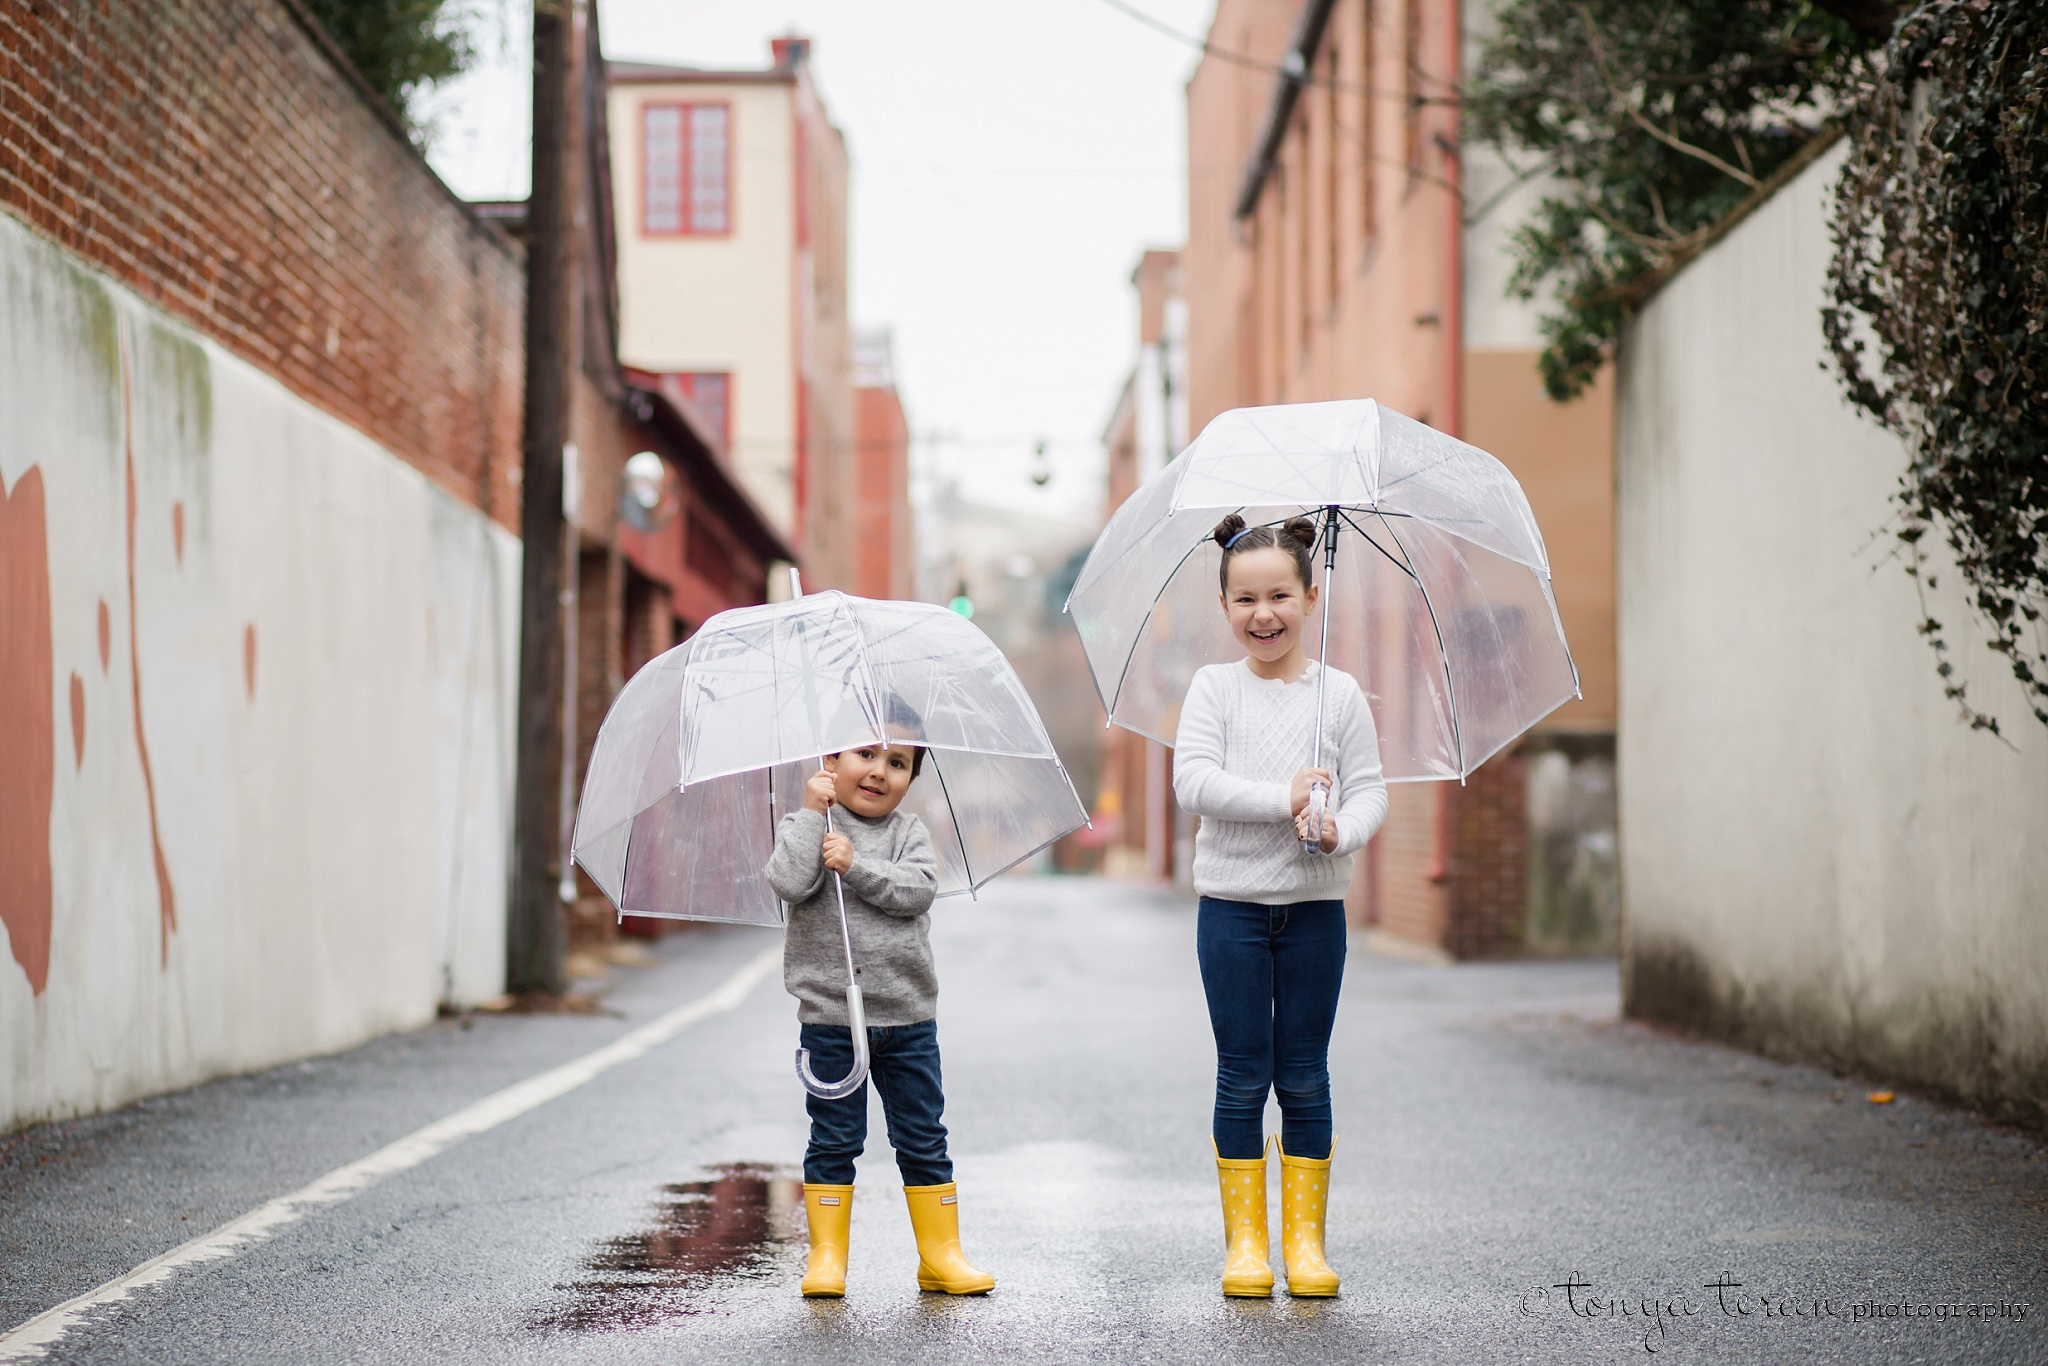 Downtown Sibling Rain Photo Session | Tonya Teran Photography, Frederick, MD Newborn, Baby, and Family Photographer